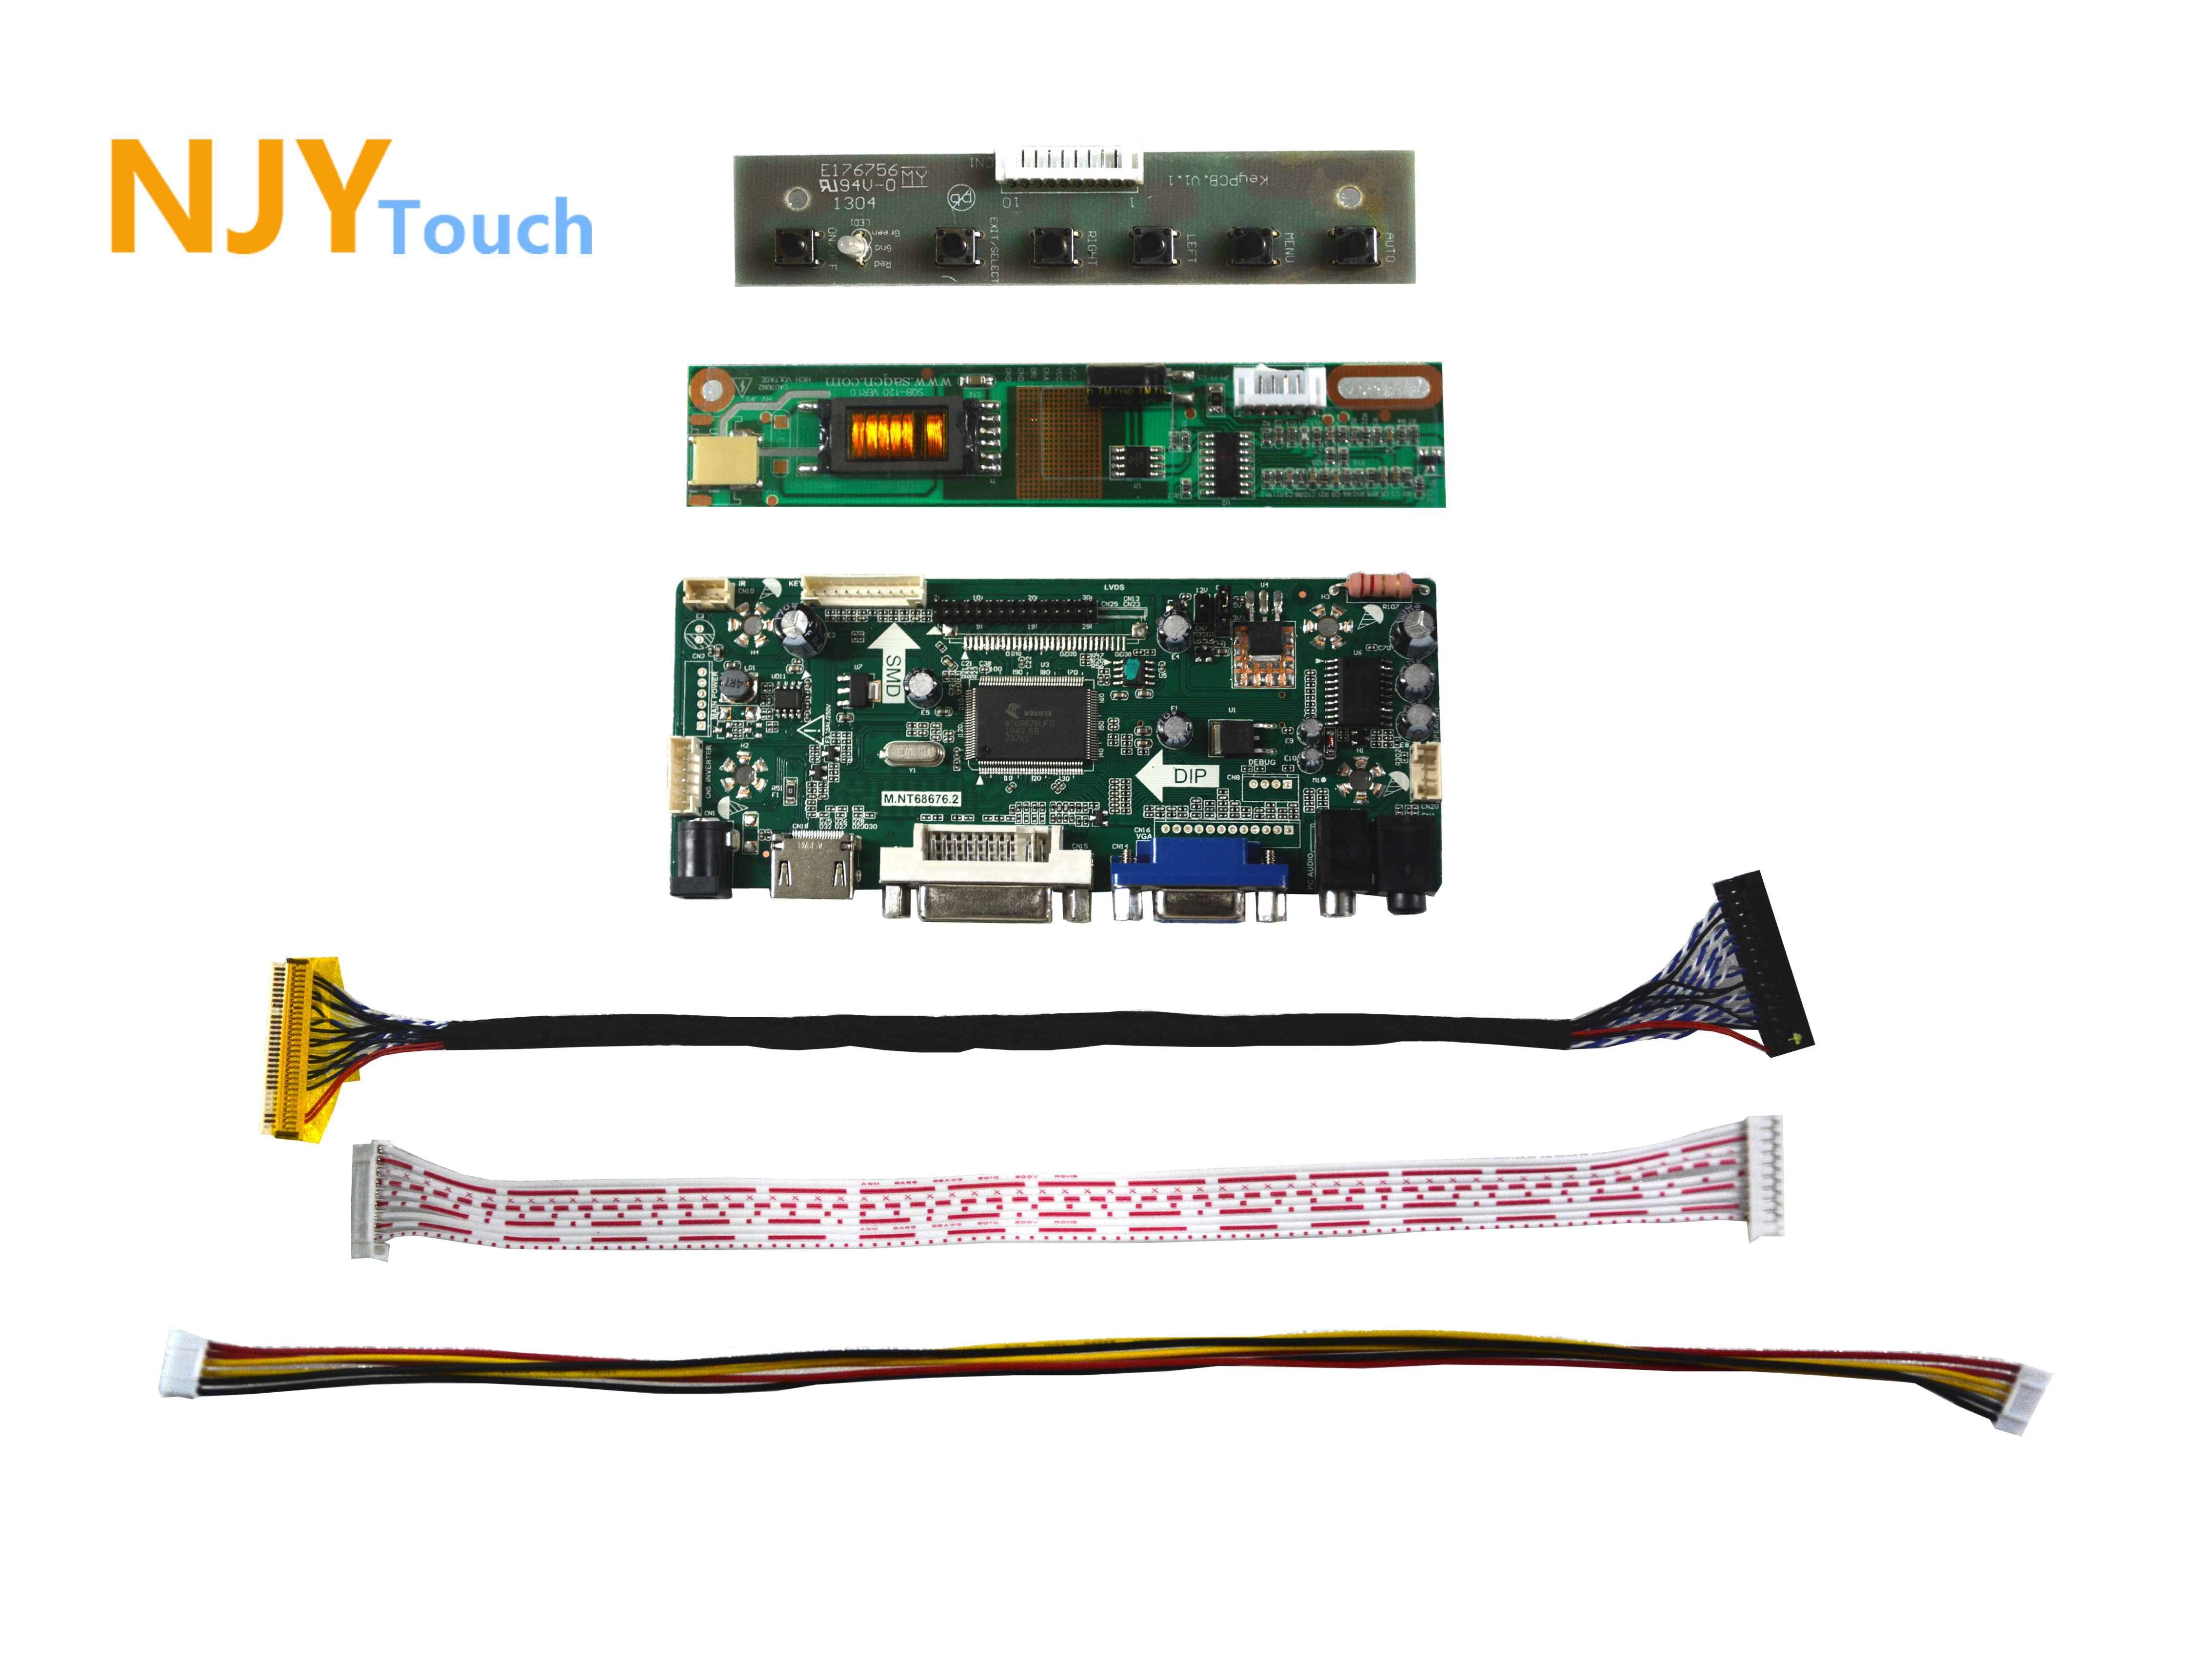 NJYTouch M.NT68676.2A HDMI VGA DVI Controller Board For 17inch B170PW06 V3 N170C2-L01 1440x900 LCD Screen